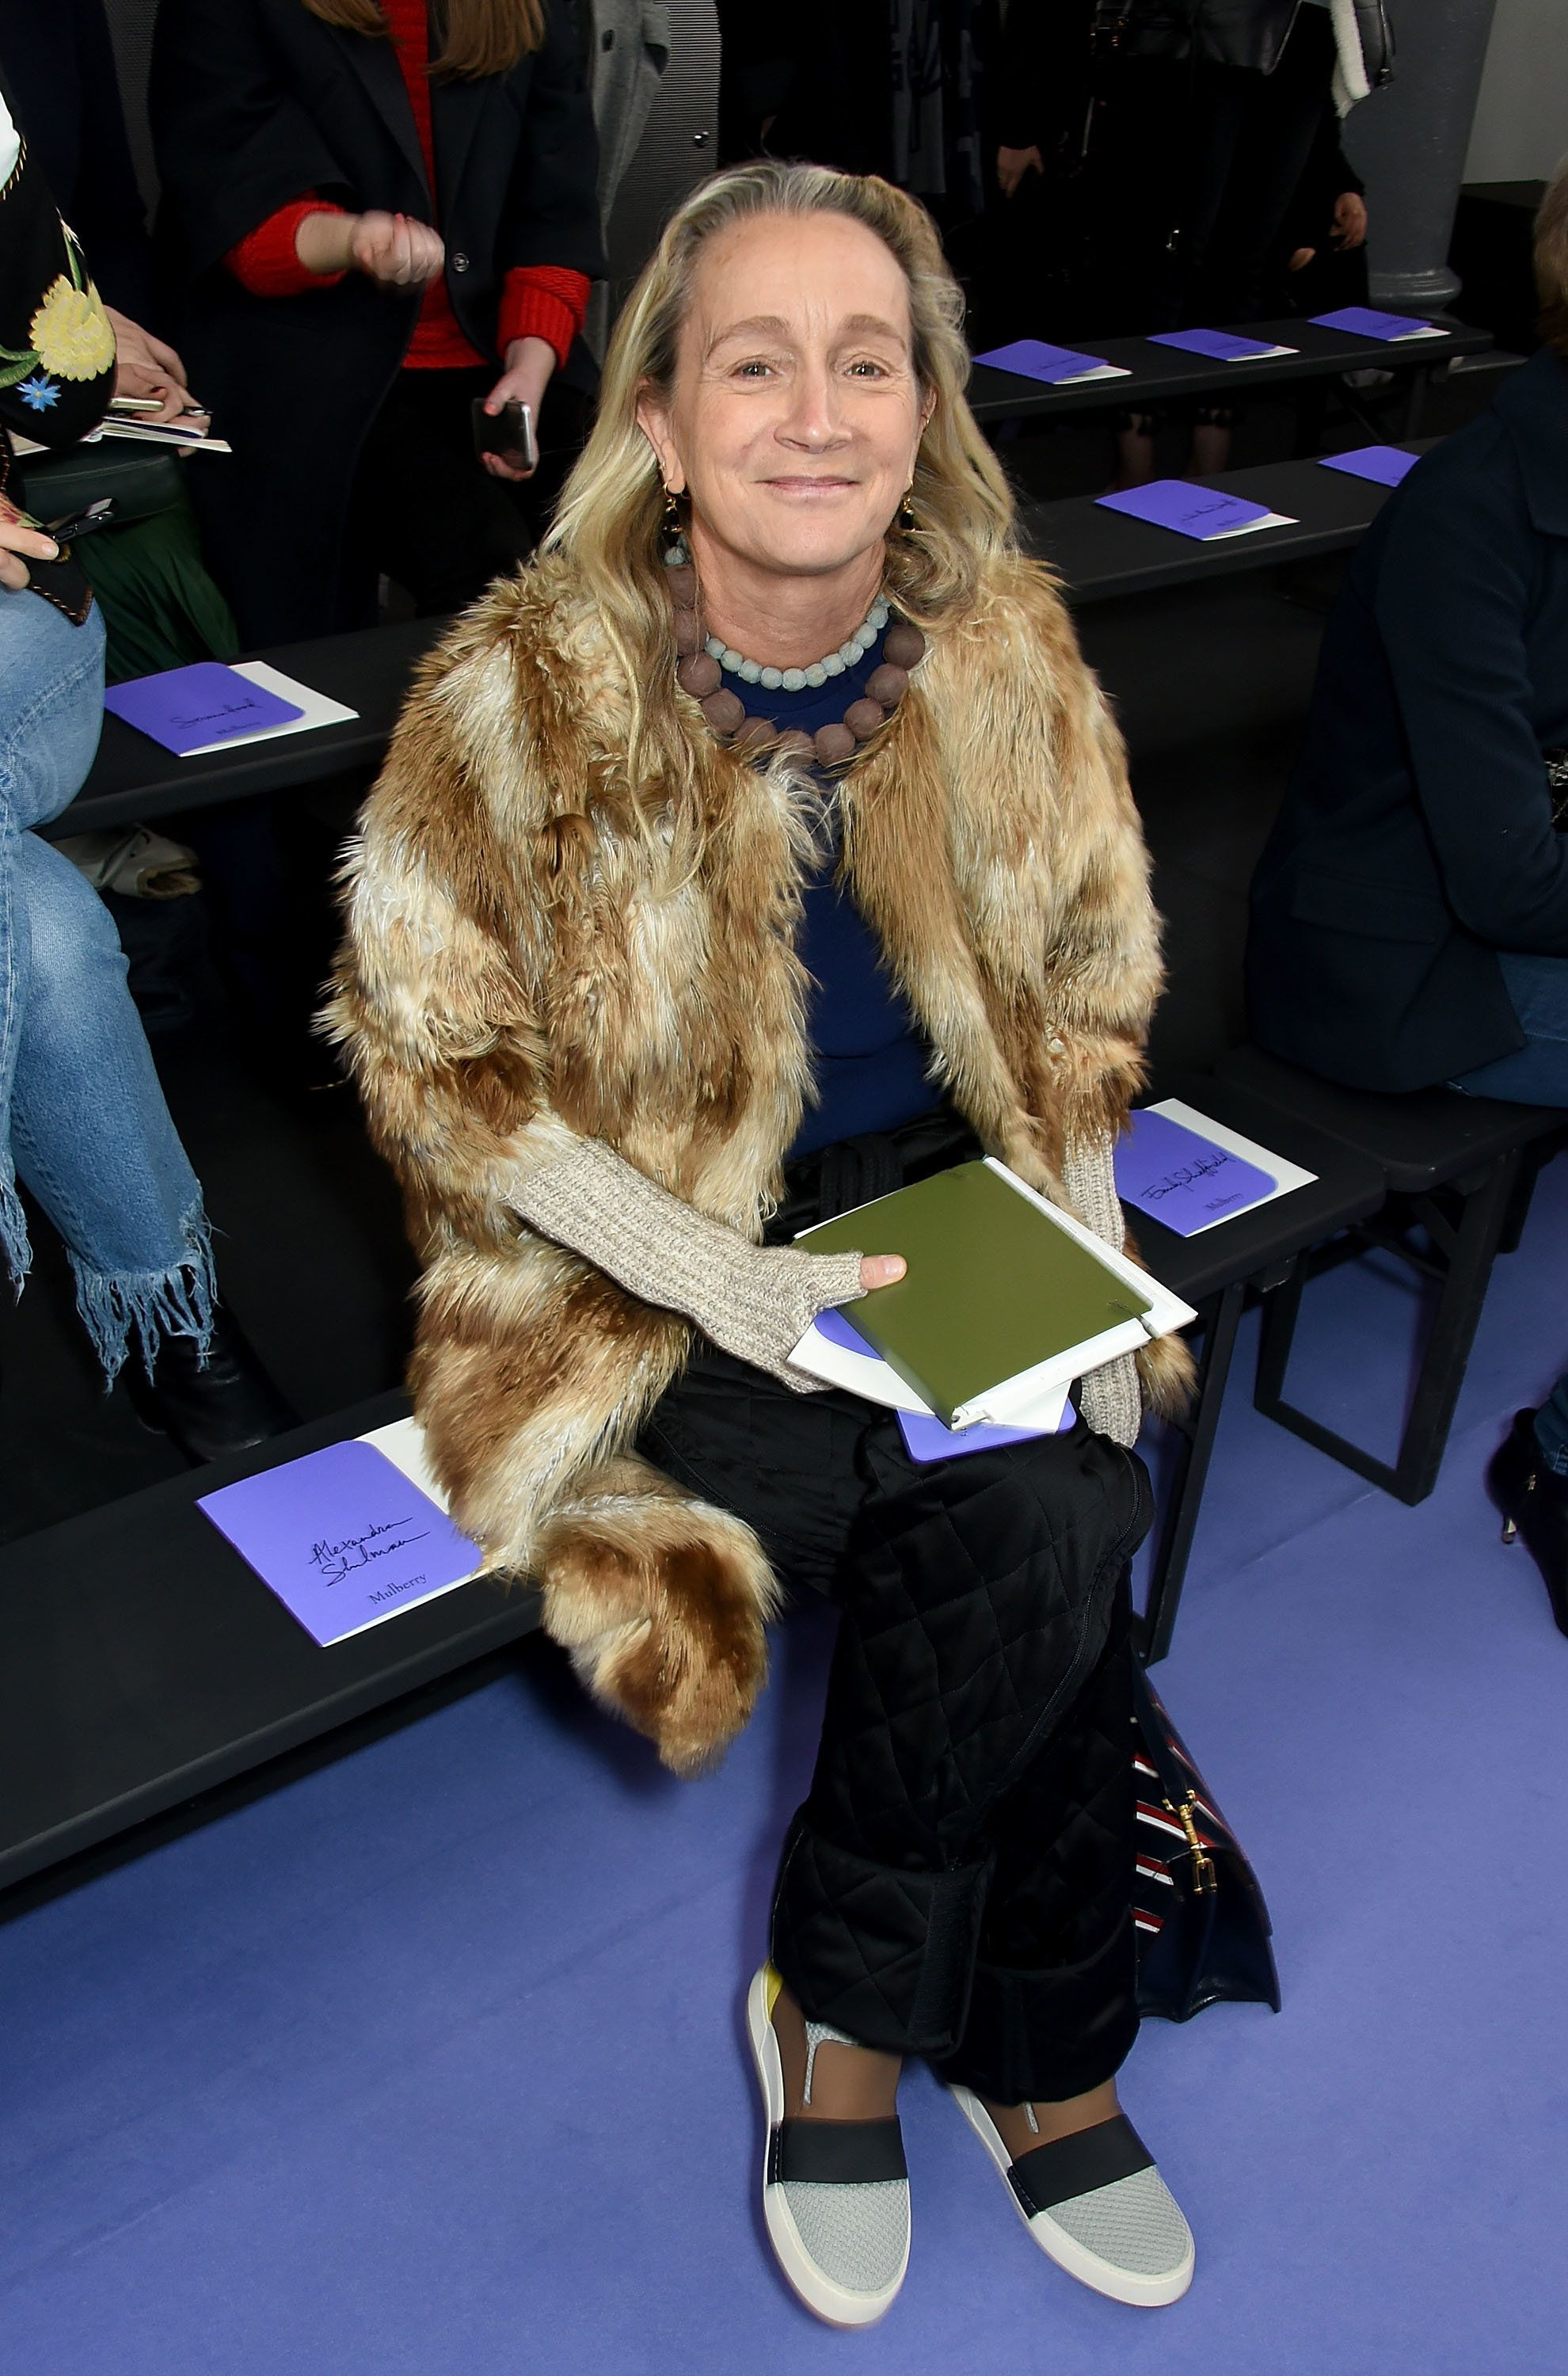 Lucinda Chambers attends the Mulberry Winter '17 LFW show at The Old Billingsgate on Feb.19 in London, England.